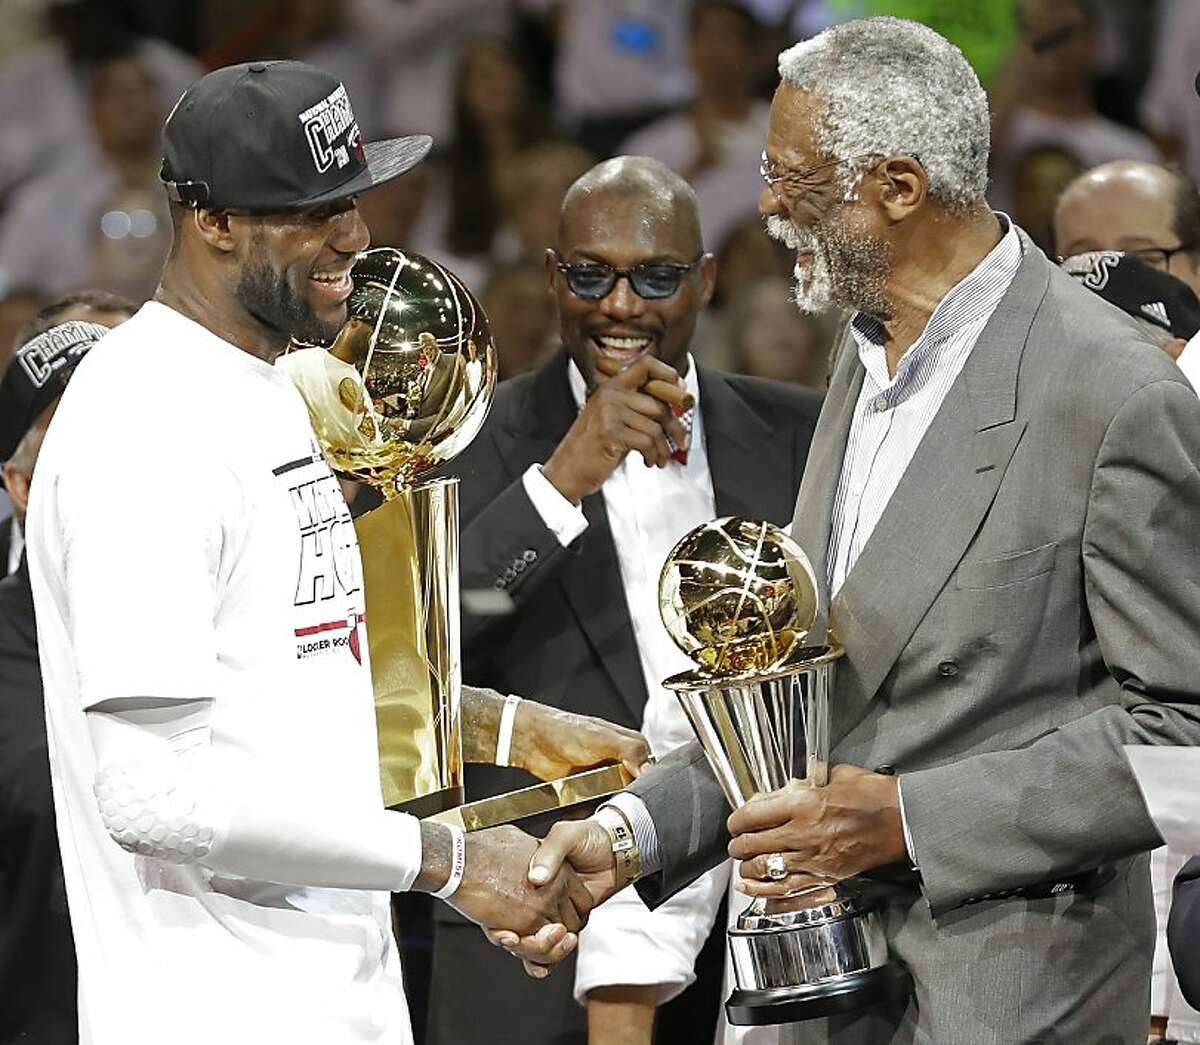 The Miami Heat's LeBron James, left, holding the Larry O'Brien NBA Championship Trophy is given the Bill Russell NBA Finals Most Valuable Player Award, by Former NBA player Bill Russell after Game 7 of the NBA basketball championship against the San Antonio Spurs, Friday, June 21, 2013, in Miami. The Miami Heat defeated the San Antonio Spurs 95-88 to win their second straight NBA championship. (AP Photo/Lynne Sladky